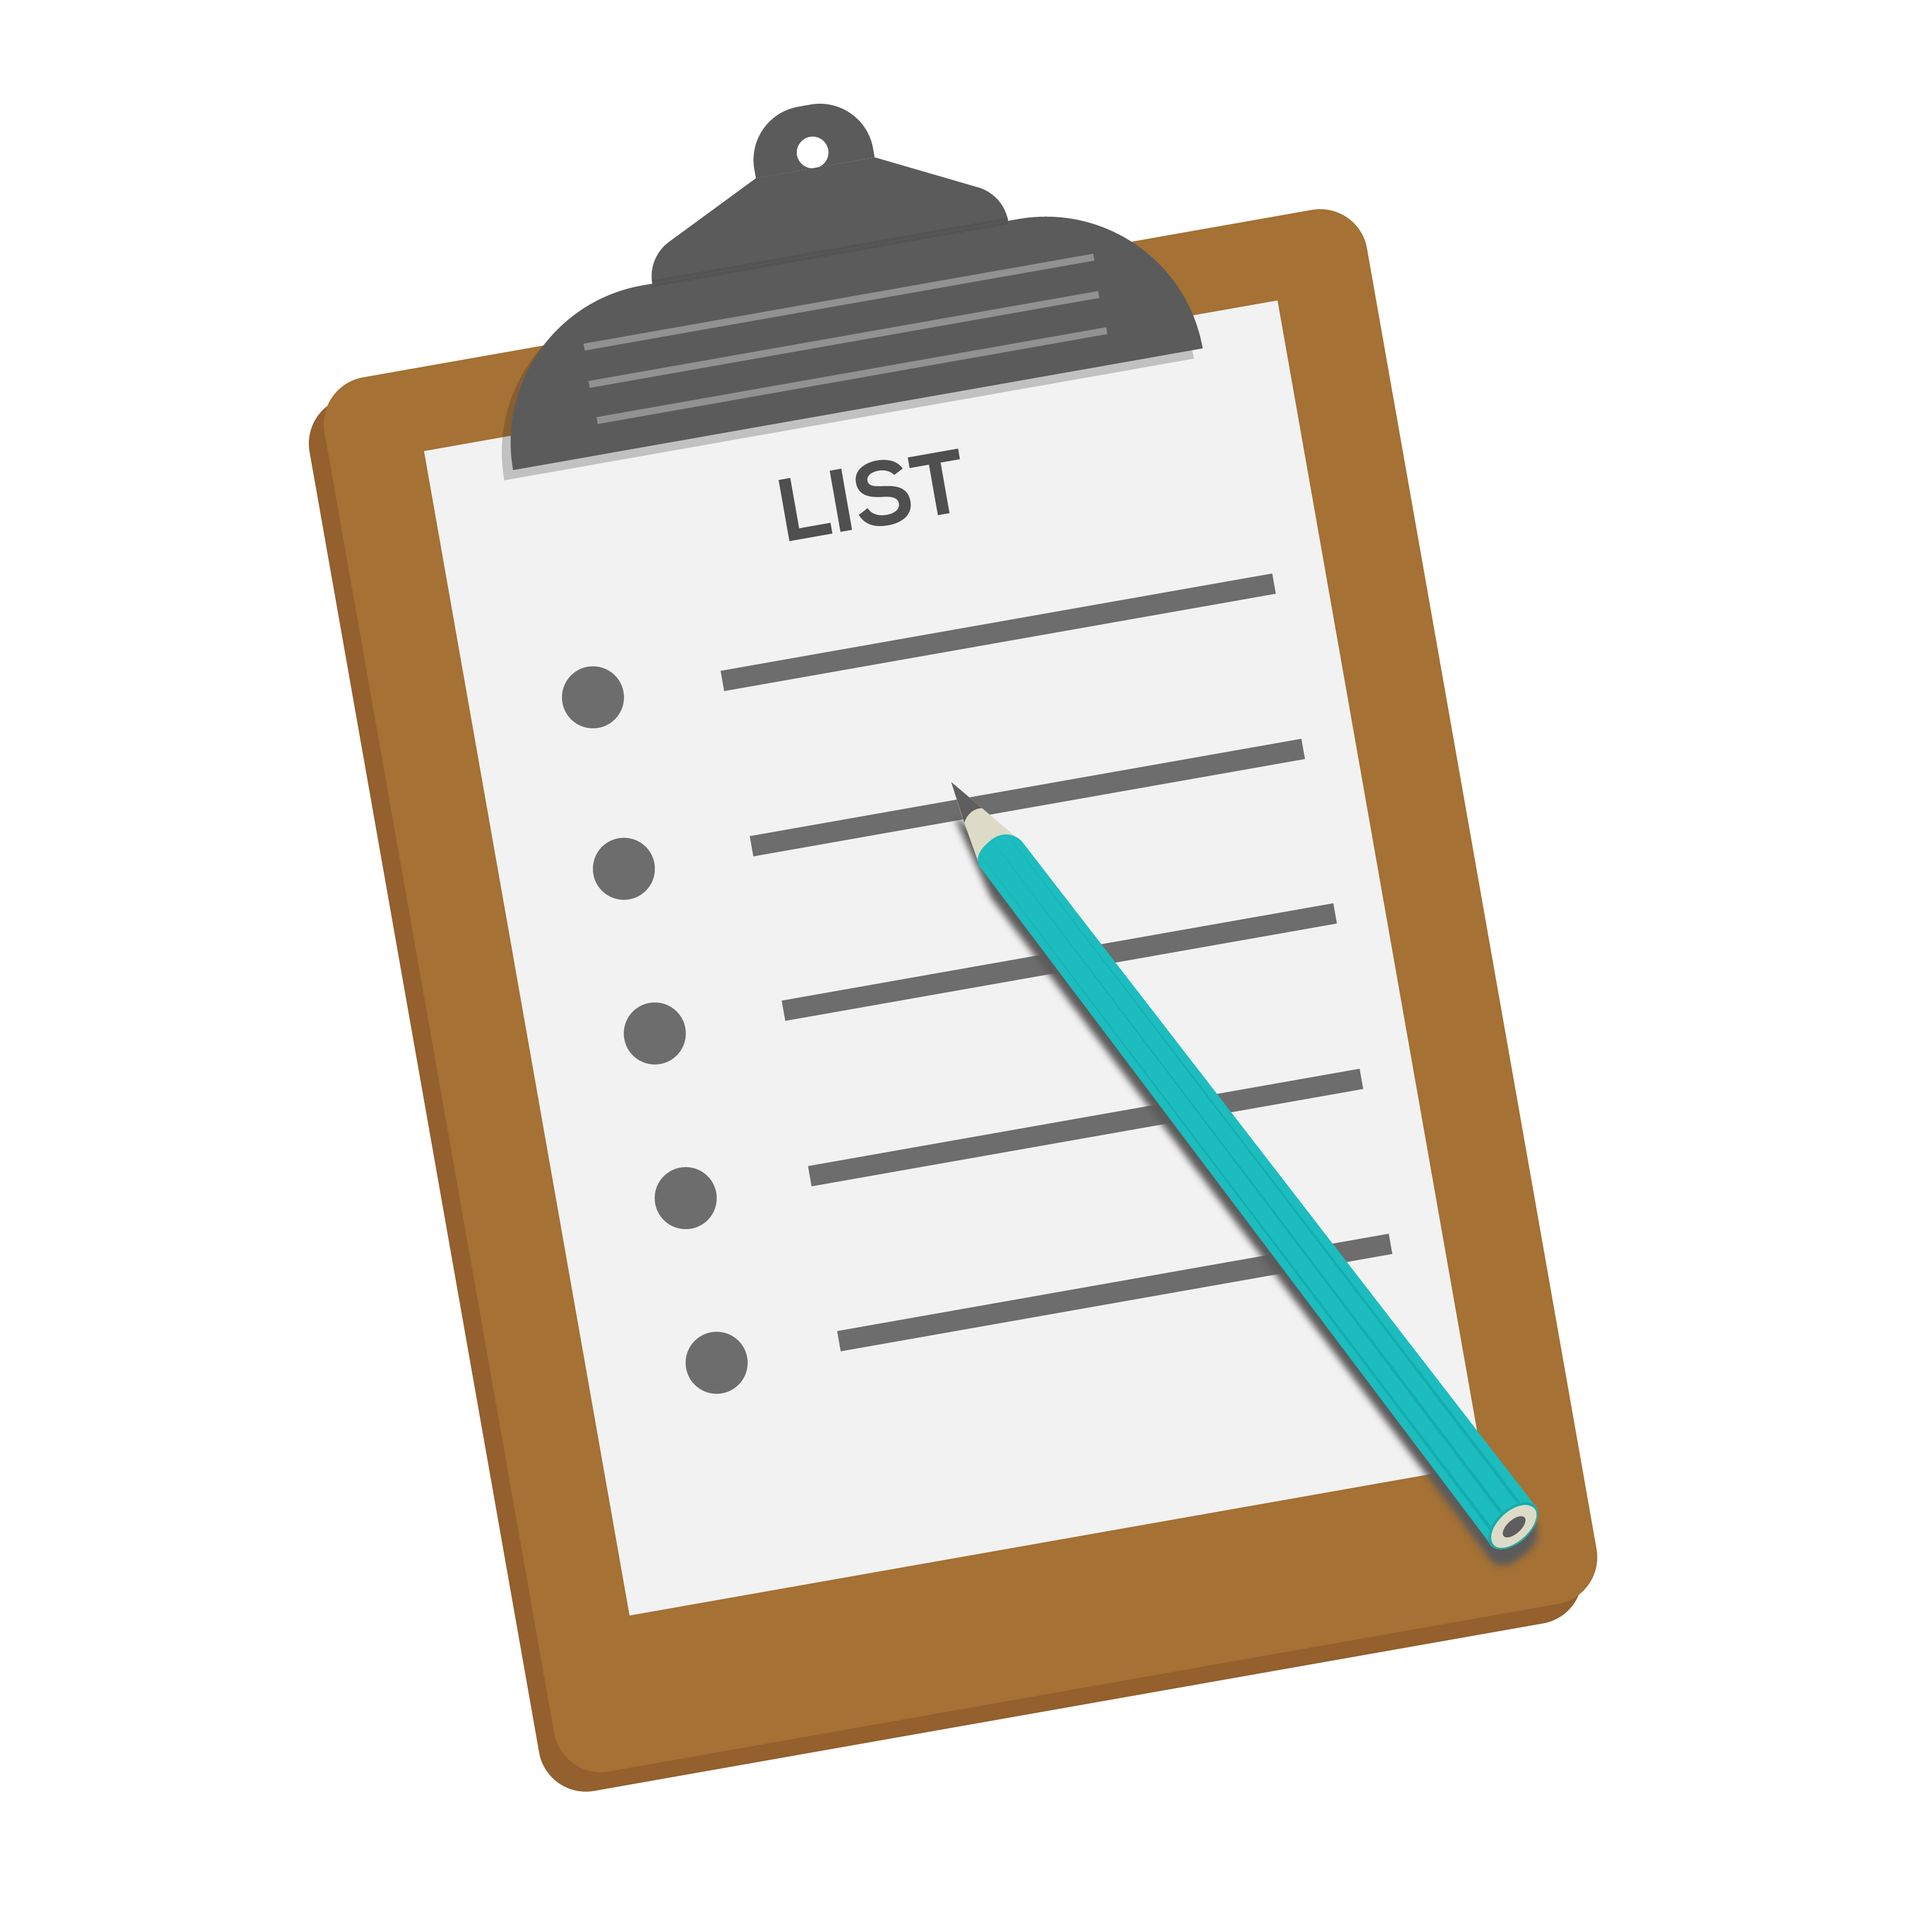 graphic_list_clipboard-01